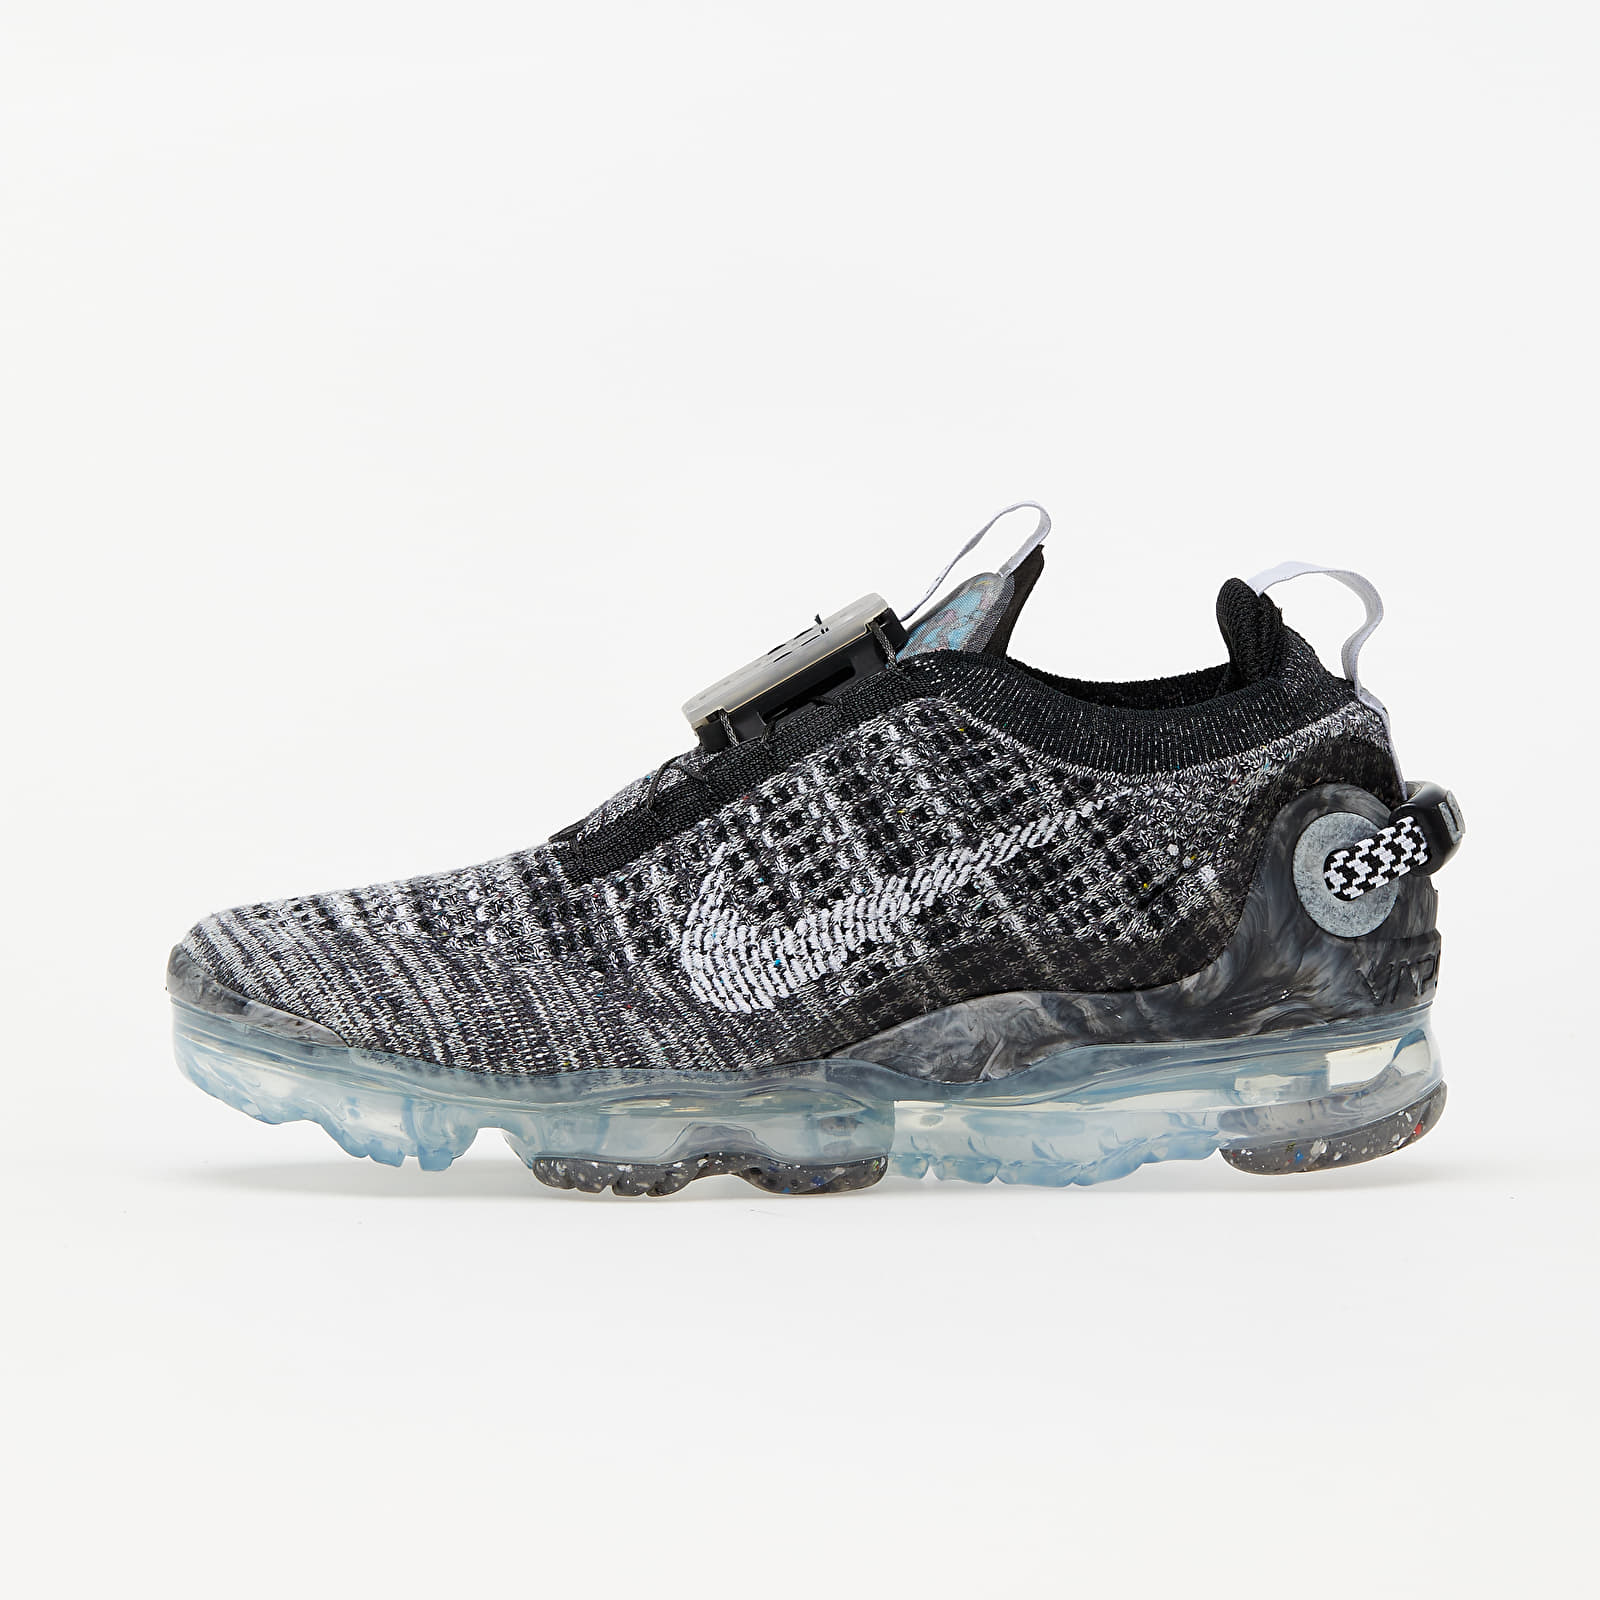 Women's shoes Nike W Air Vapormax 2020 Fk Black/ White-Grey Fog